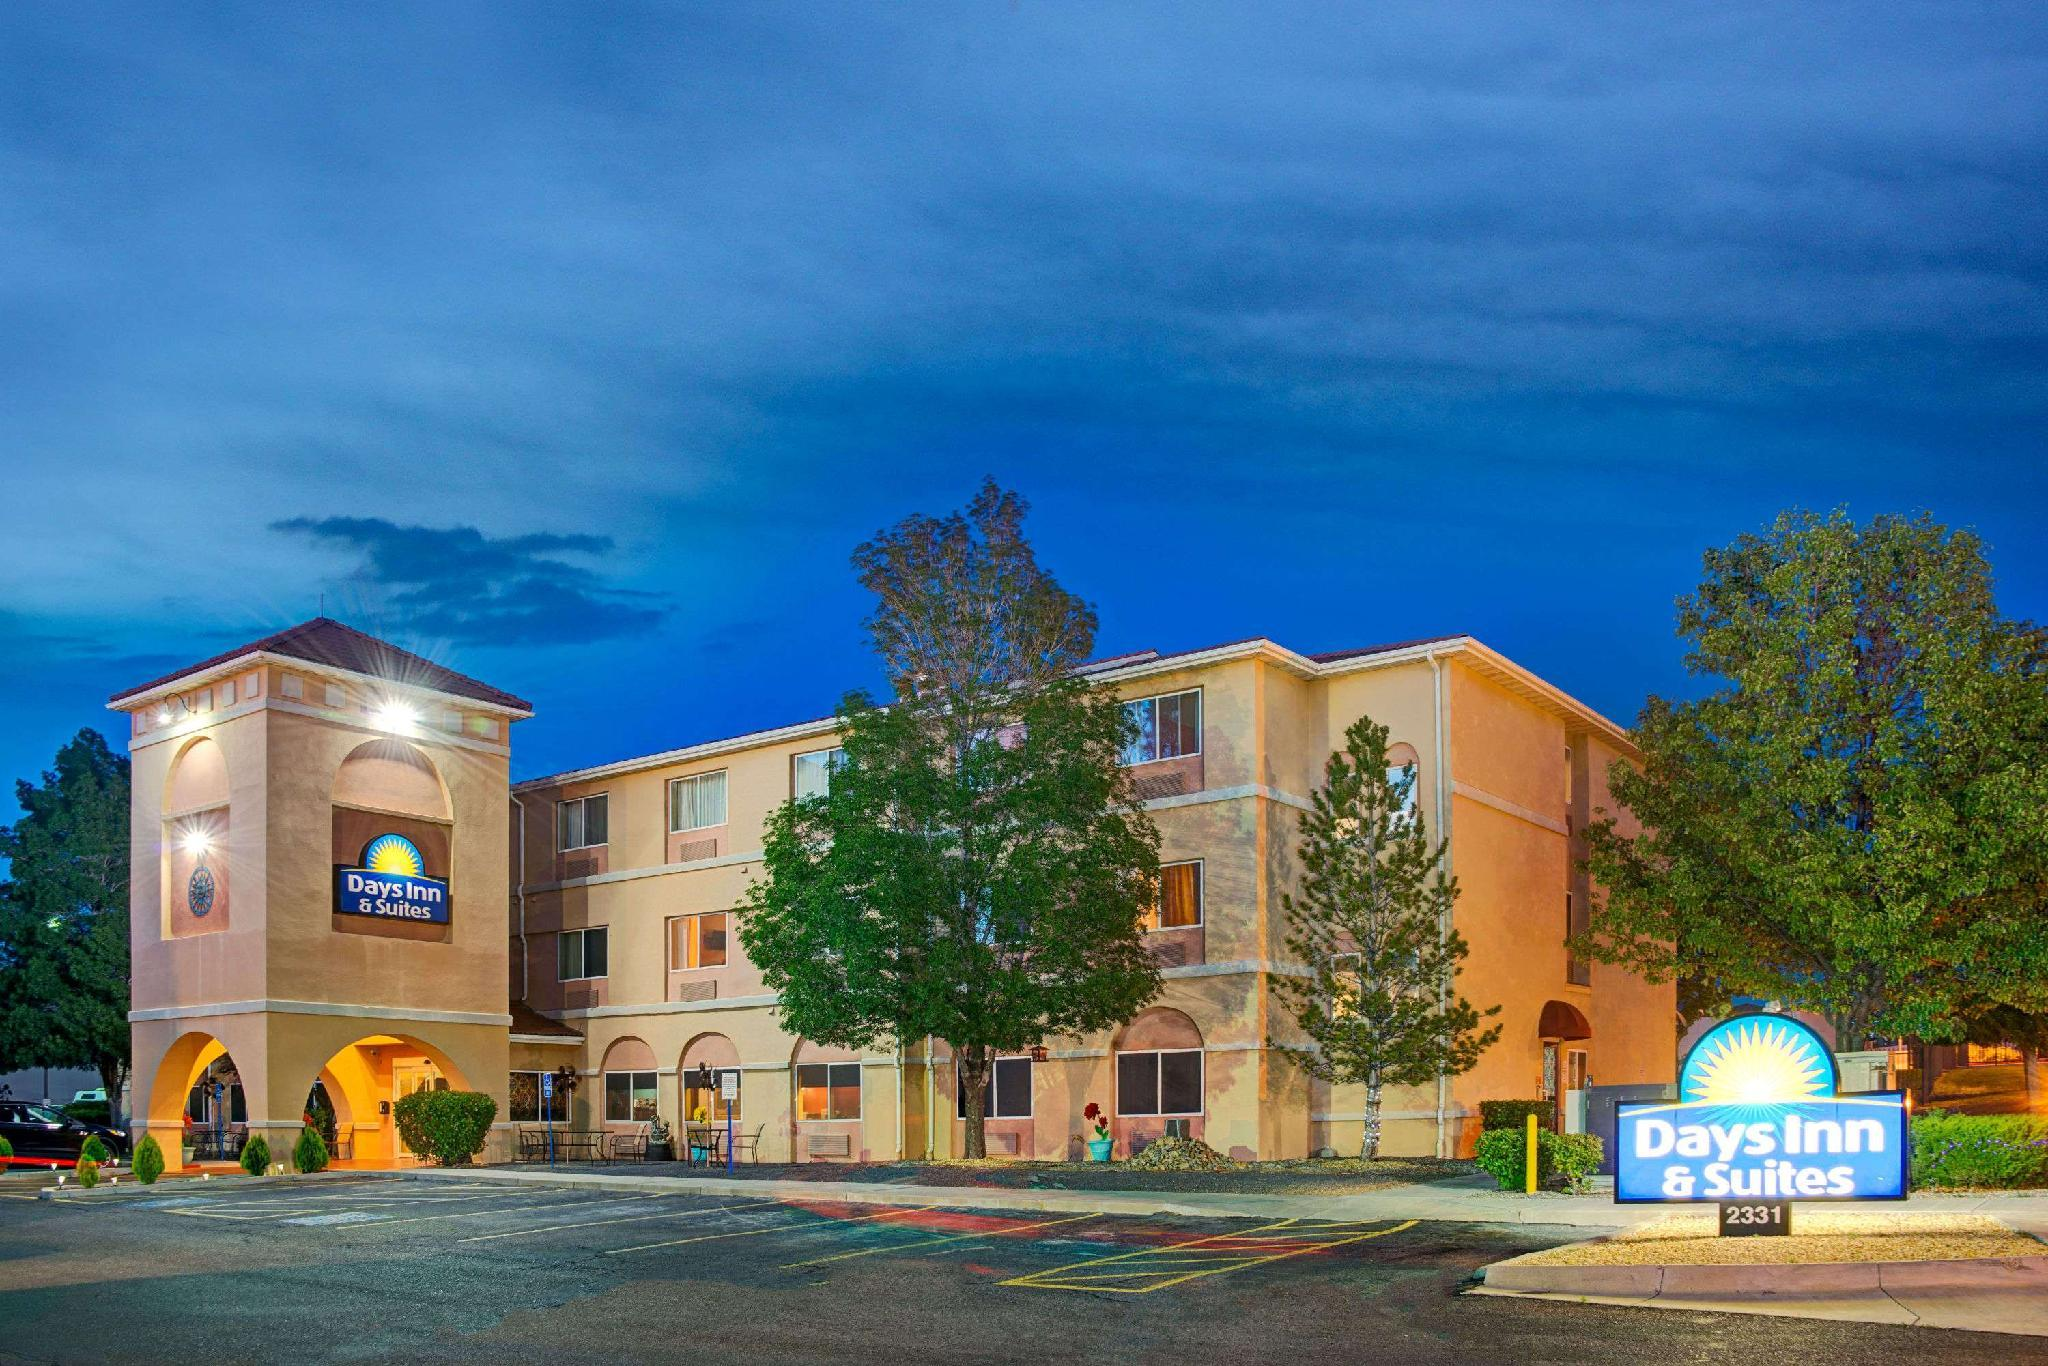 Days Inn And Suites By Wyndham Airport Albuquerque